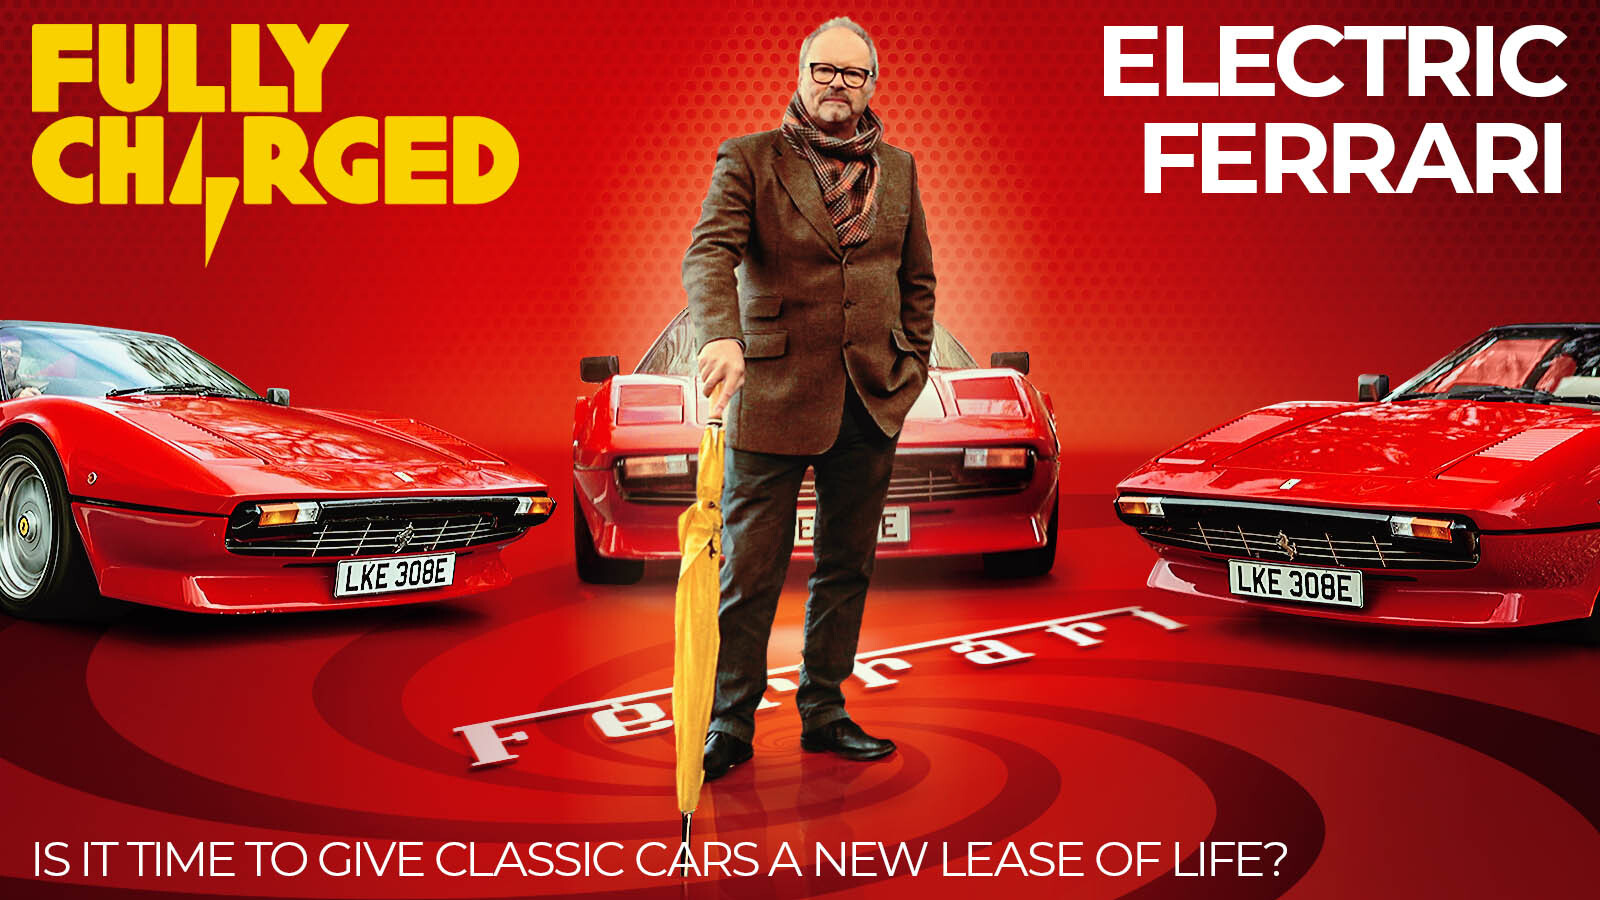 Electric Ferrari Time To Give Classic Cars A New Lease Of Life Electrek